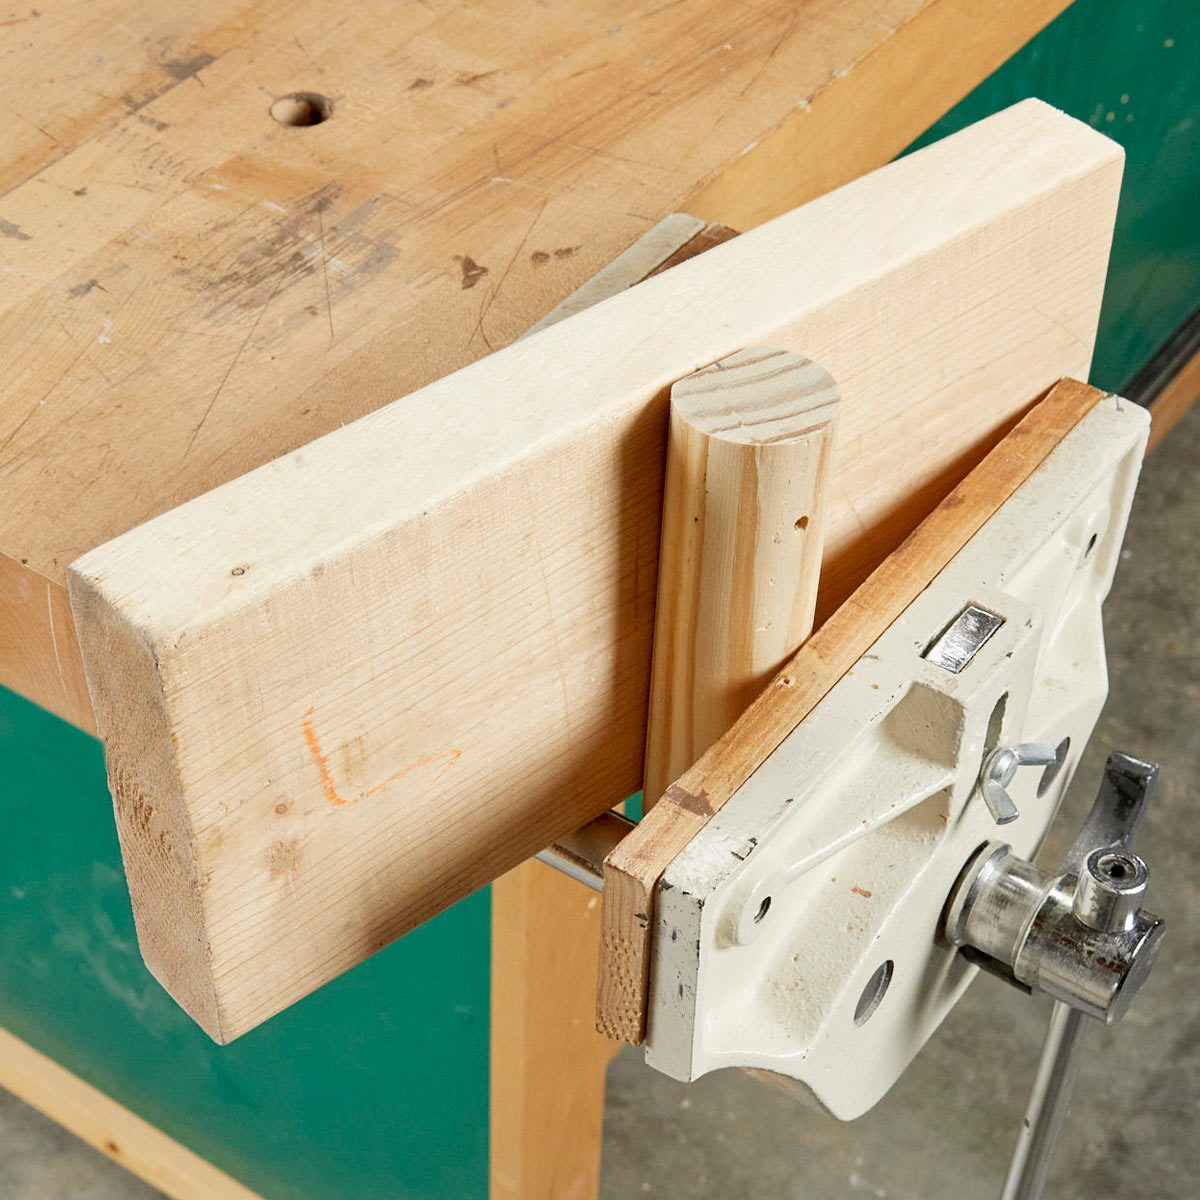 Sensational Bench Vise Add On That Costs Next To Nothing Family Handyman Creativecarmelina Interior Chair Design Creativecarmelinacom